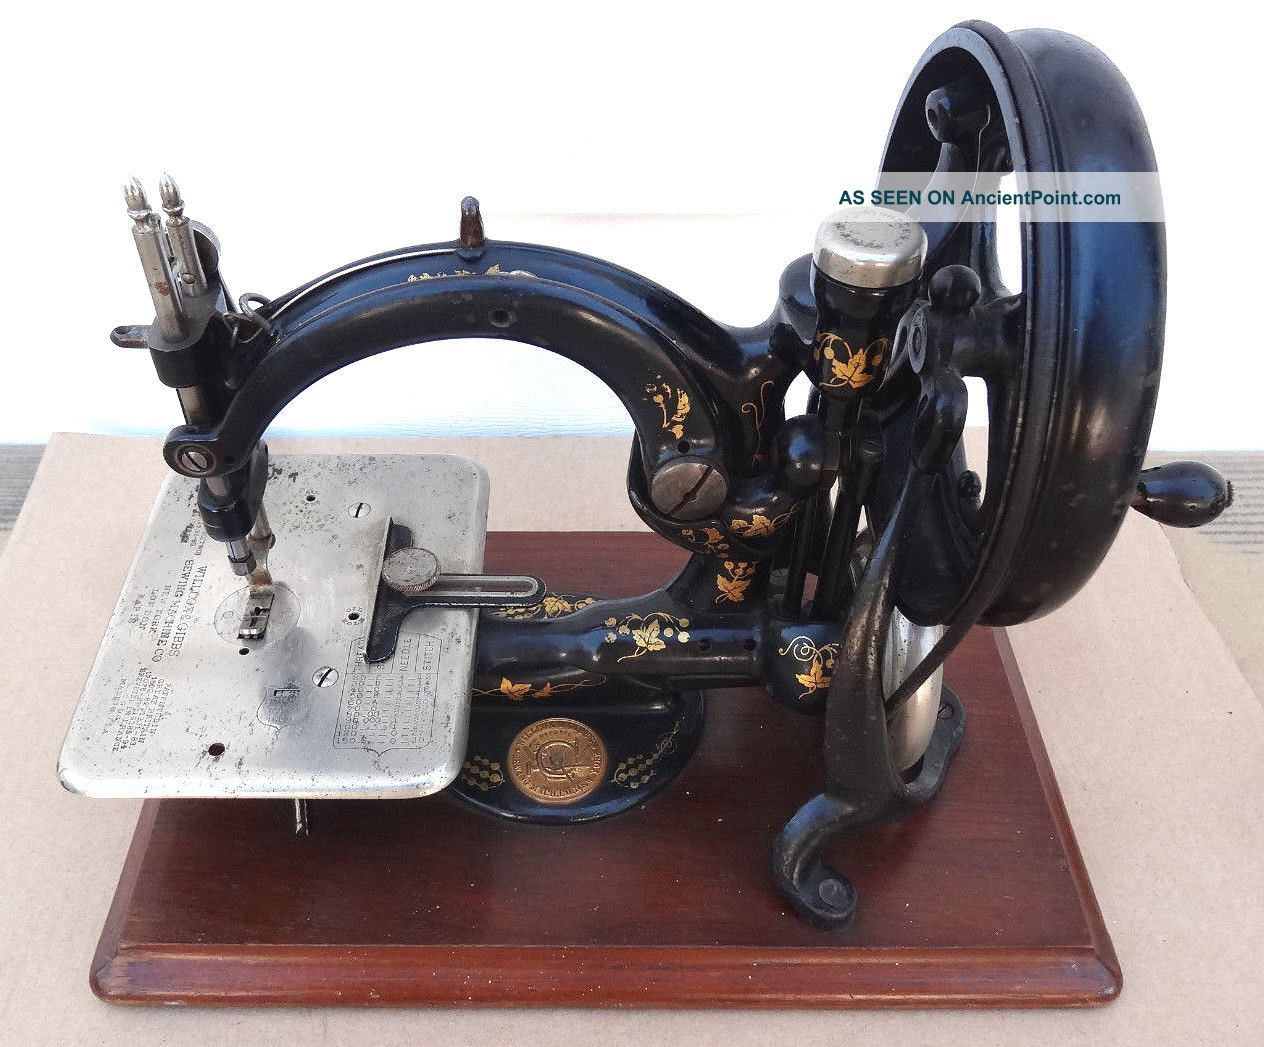 Antique Willcox Gibbs Sewing Machine Hand Cranked Cast Iron Treadle Portable Sewing Machines photo